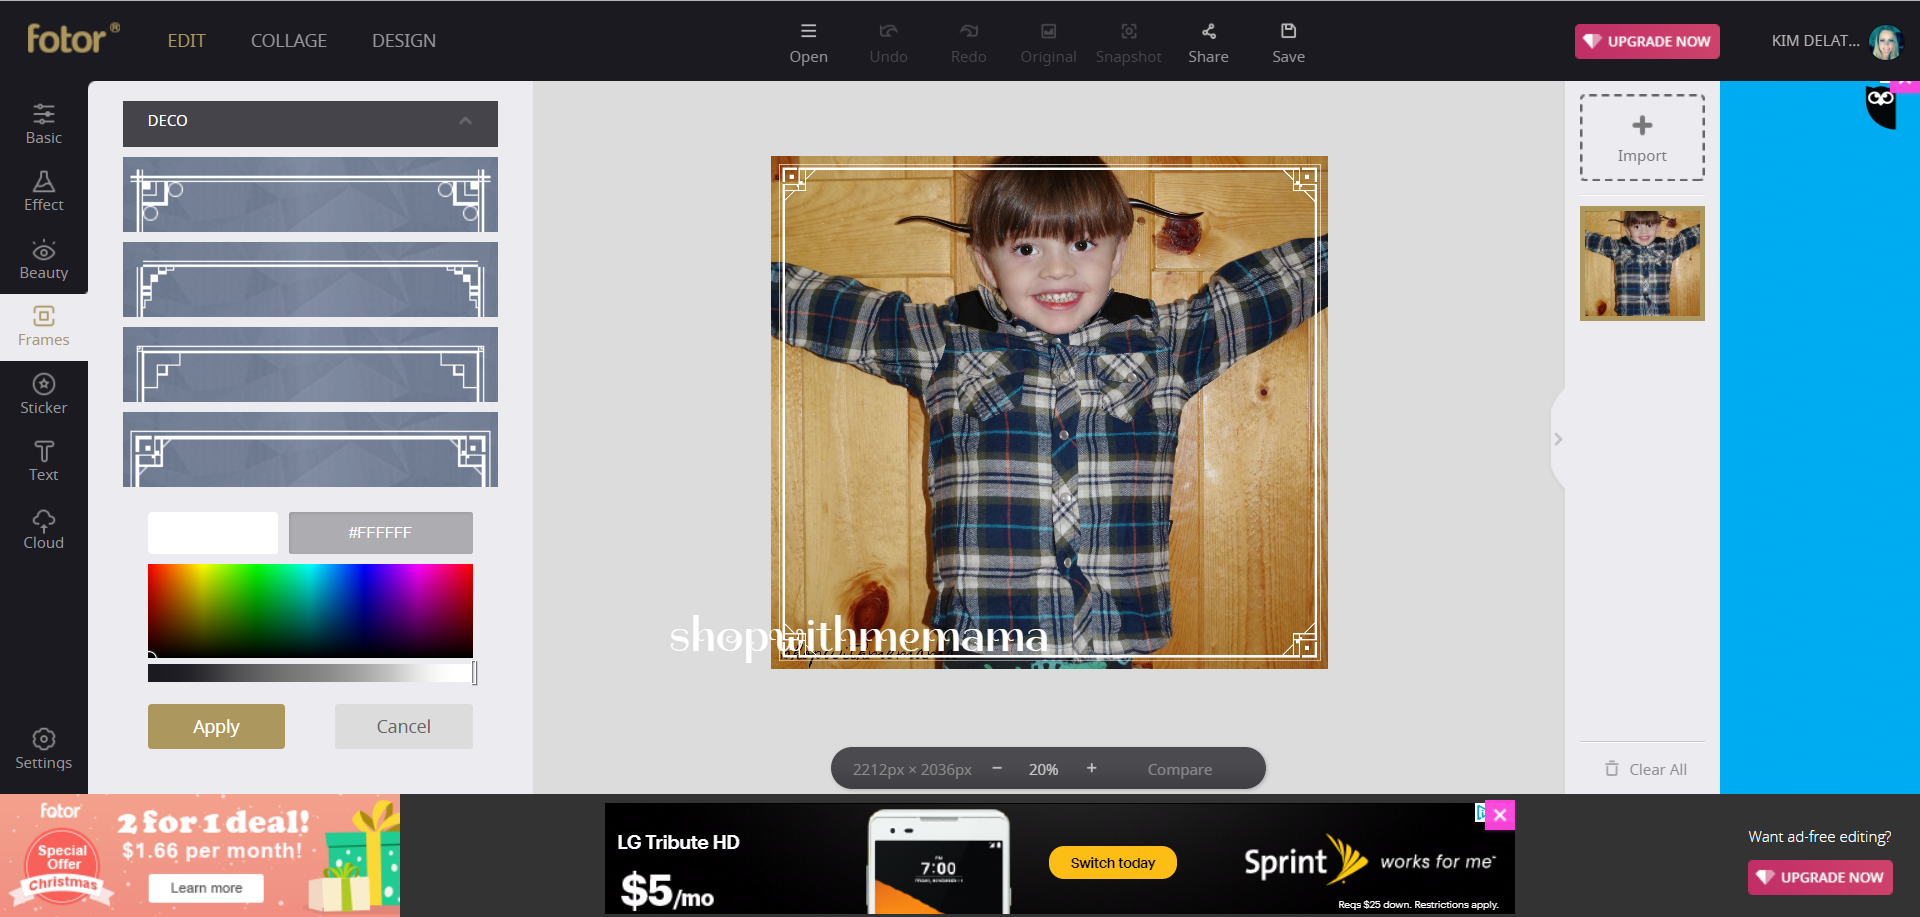 Create Beautiful Collages, Edit Photos, Design Graphics And More With Fotor